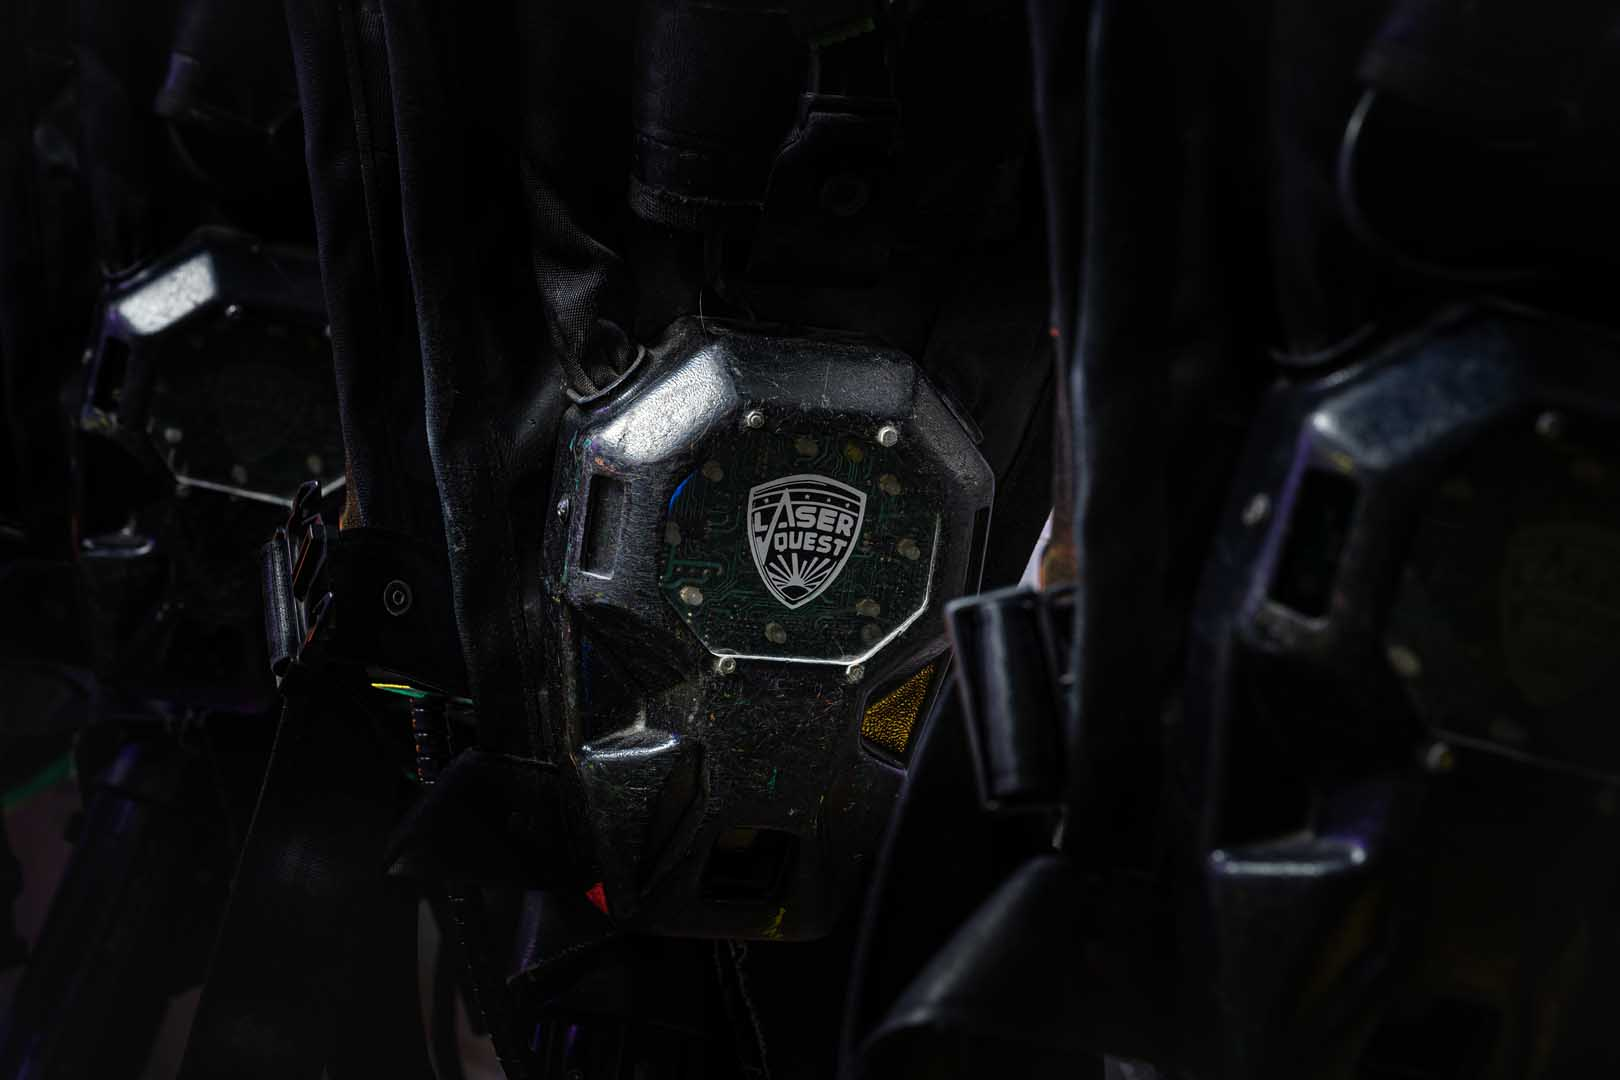 Laserquest logo on gear